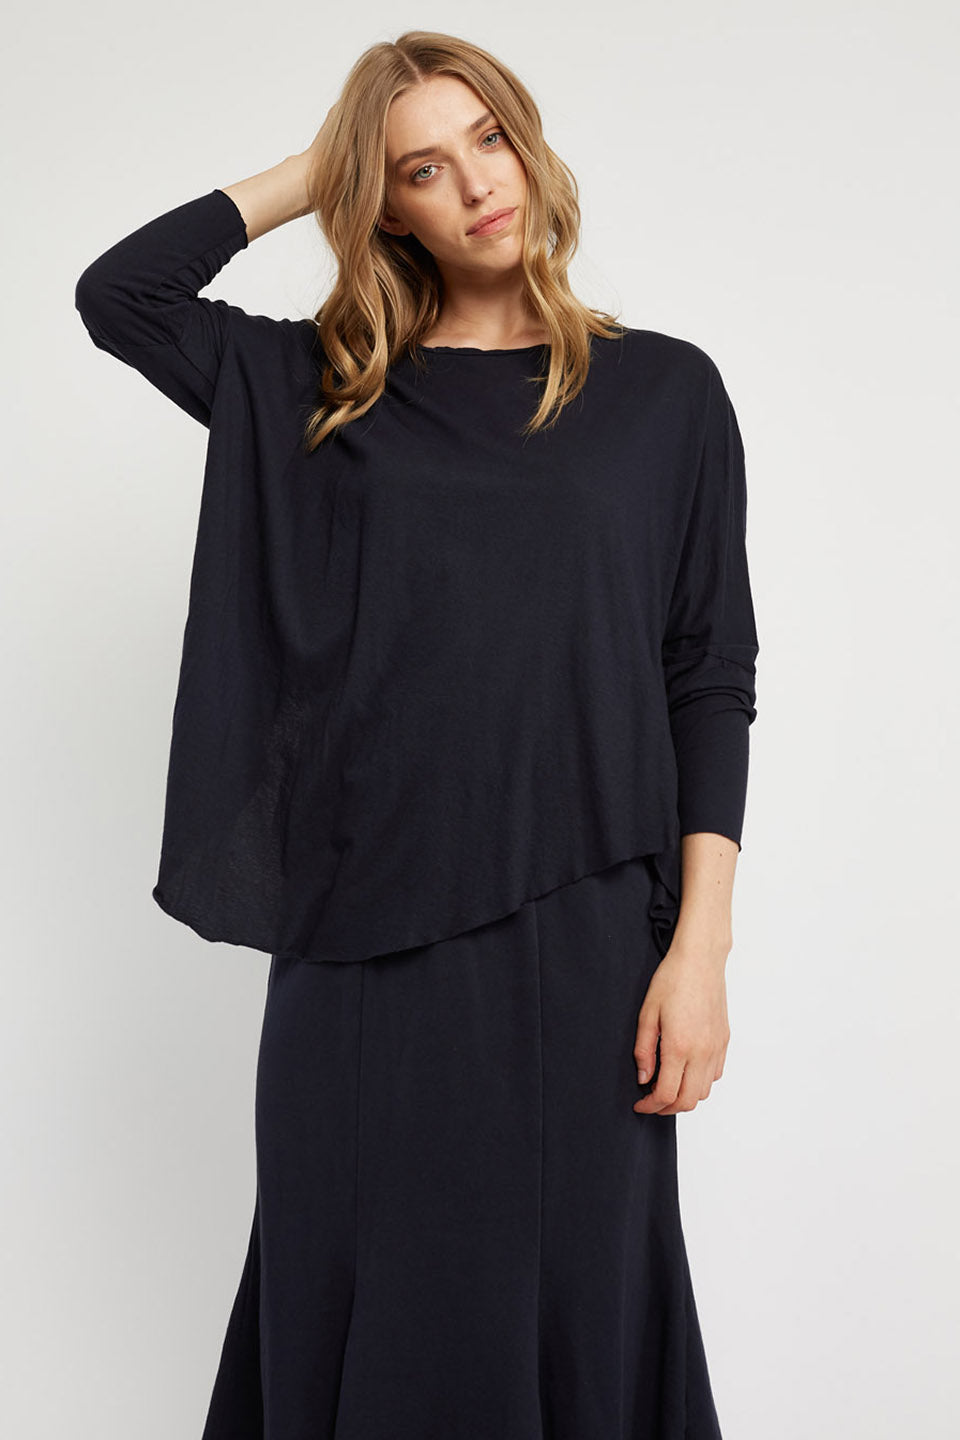 FAXI L/S TOP - DARK NAVY